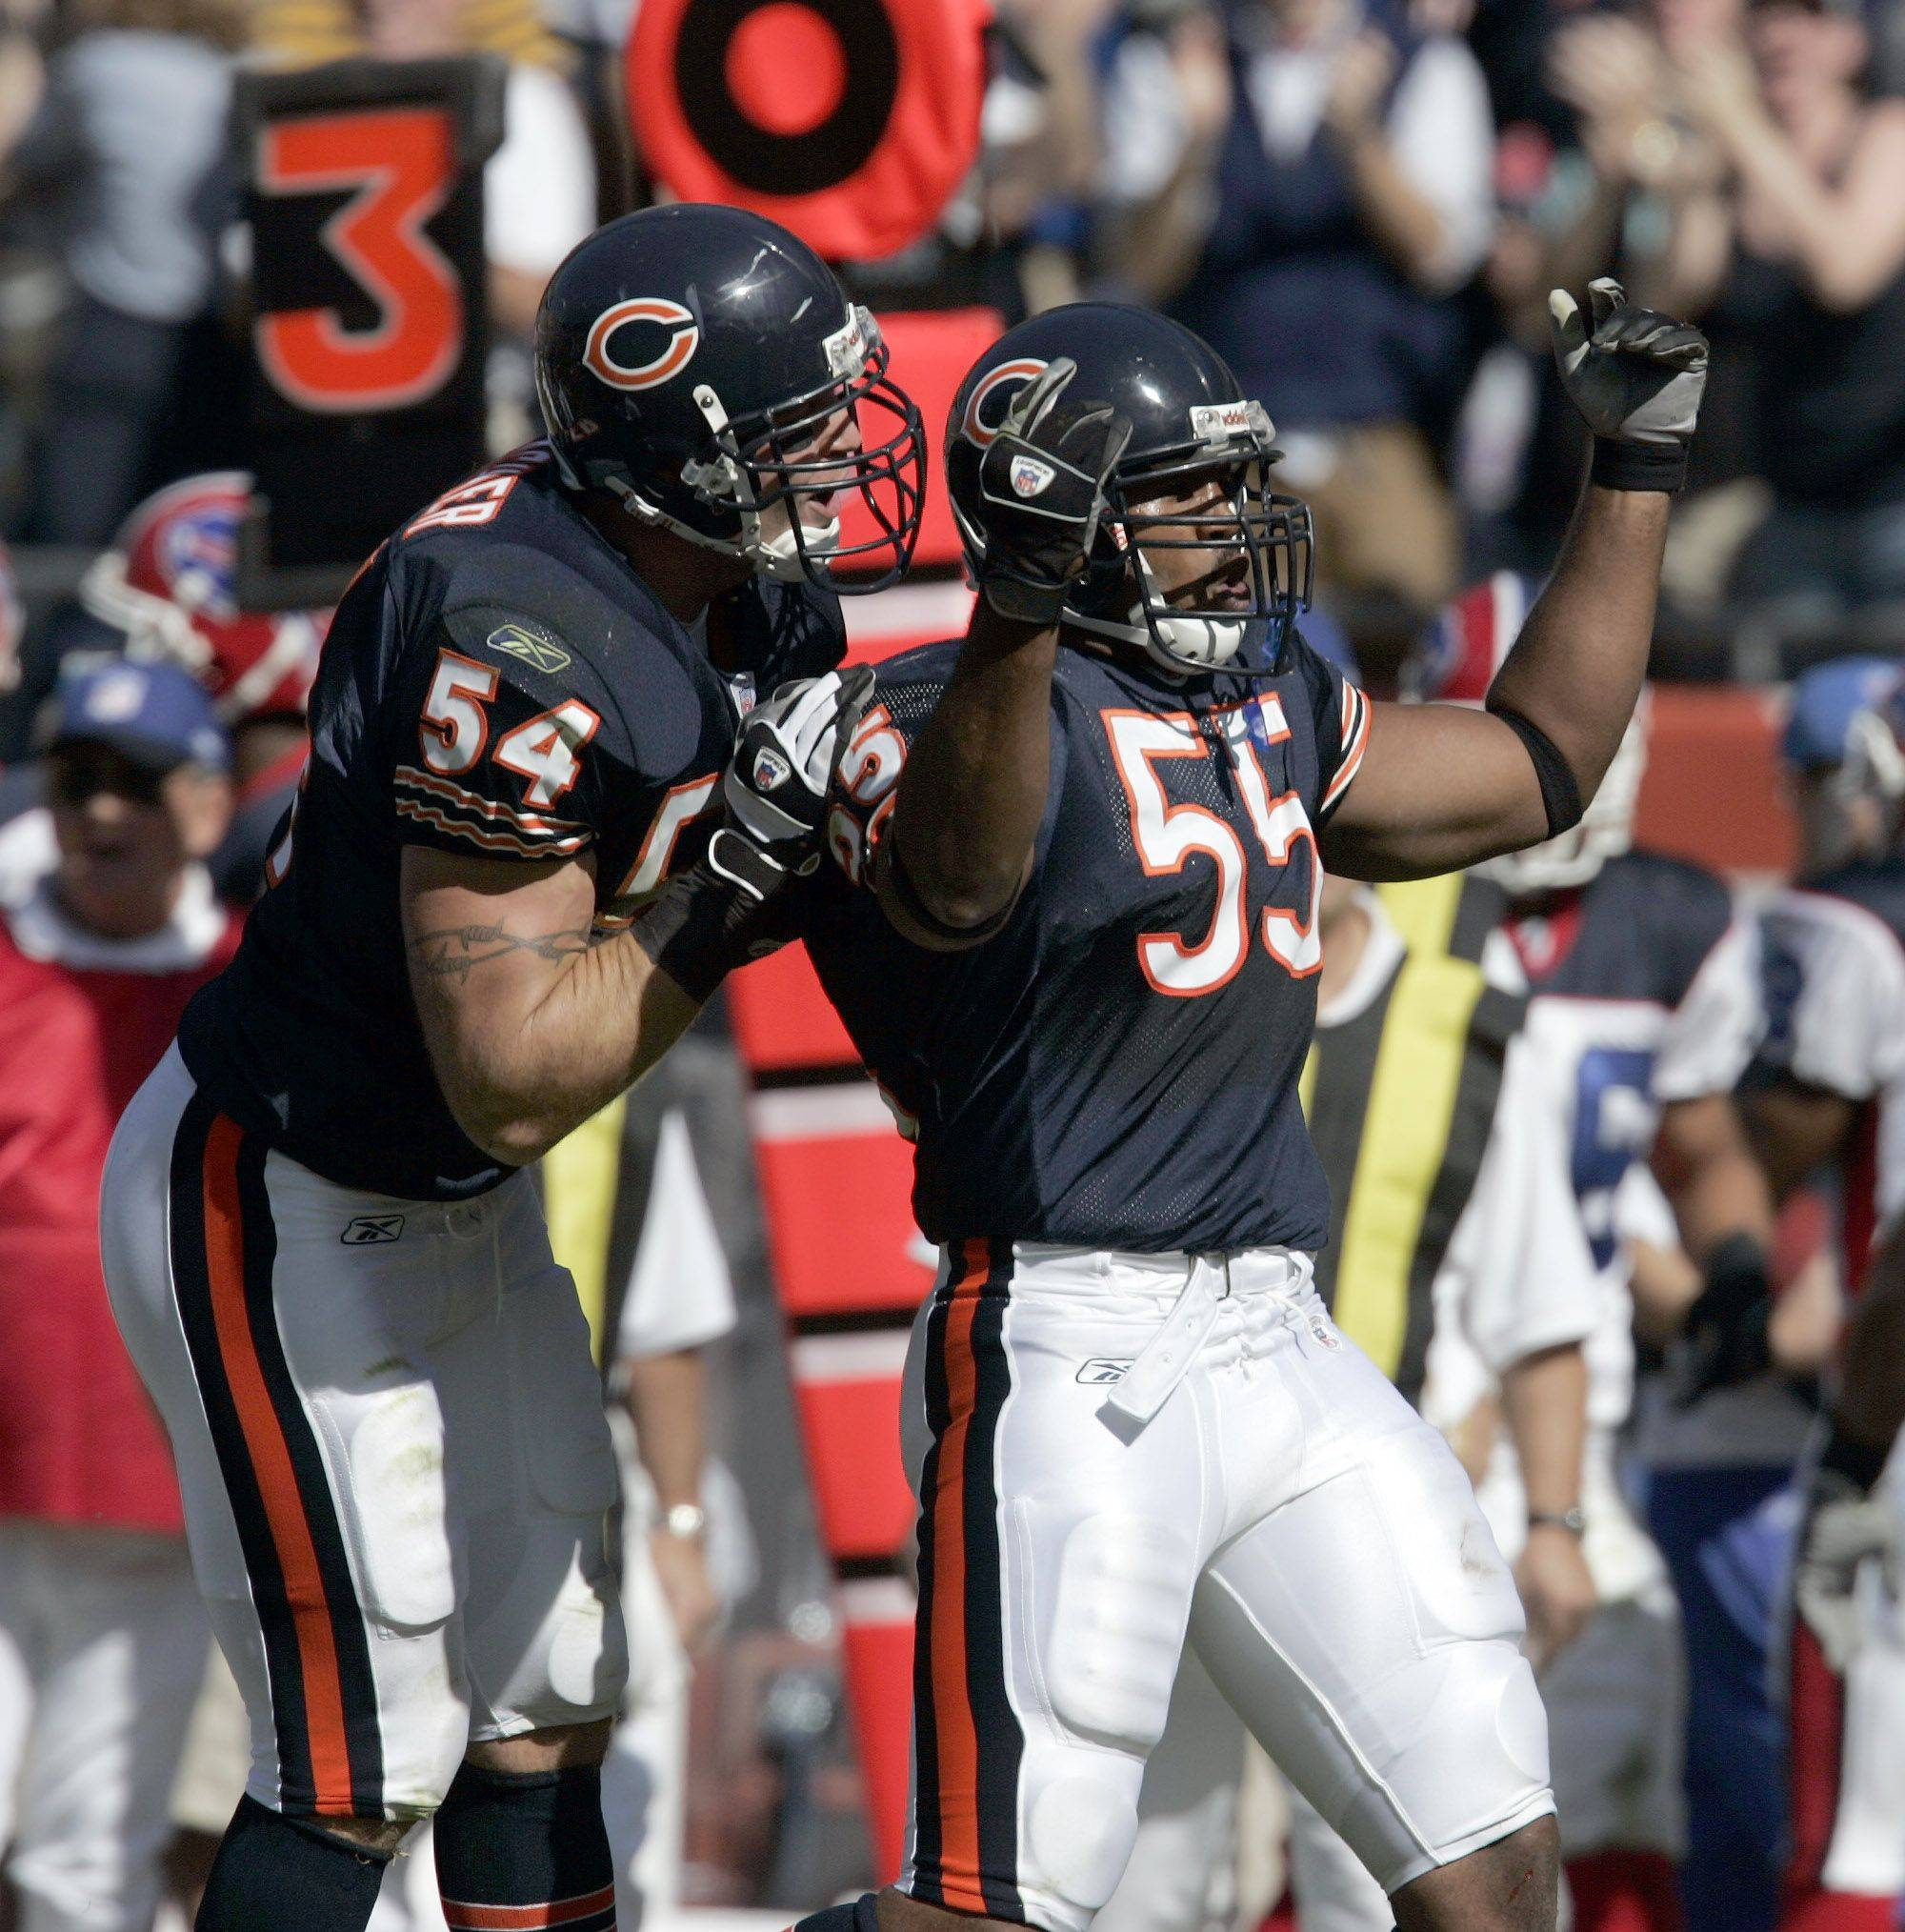 BRIAN HILL/bhill@dailyherald.com Bears linebackers Lance Briggs and Brian Urlacher.